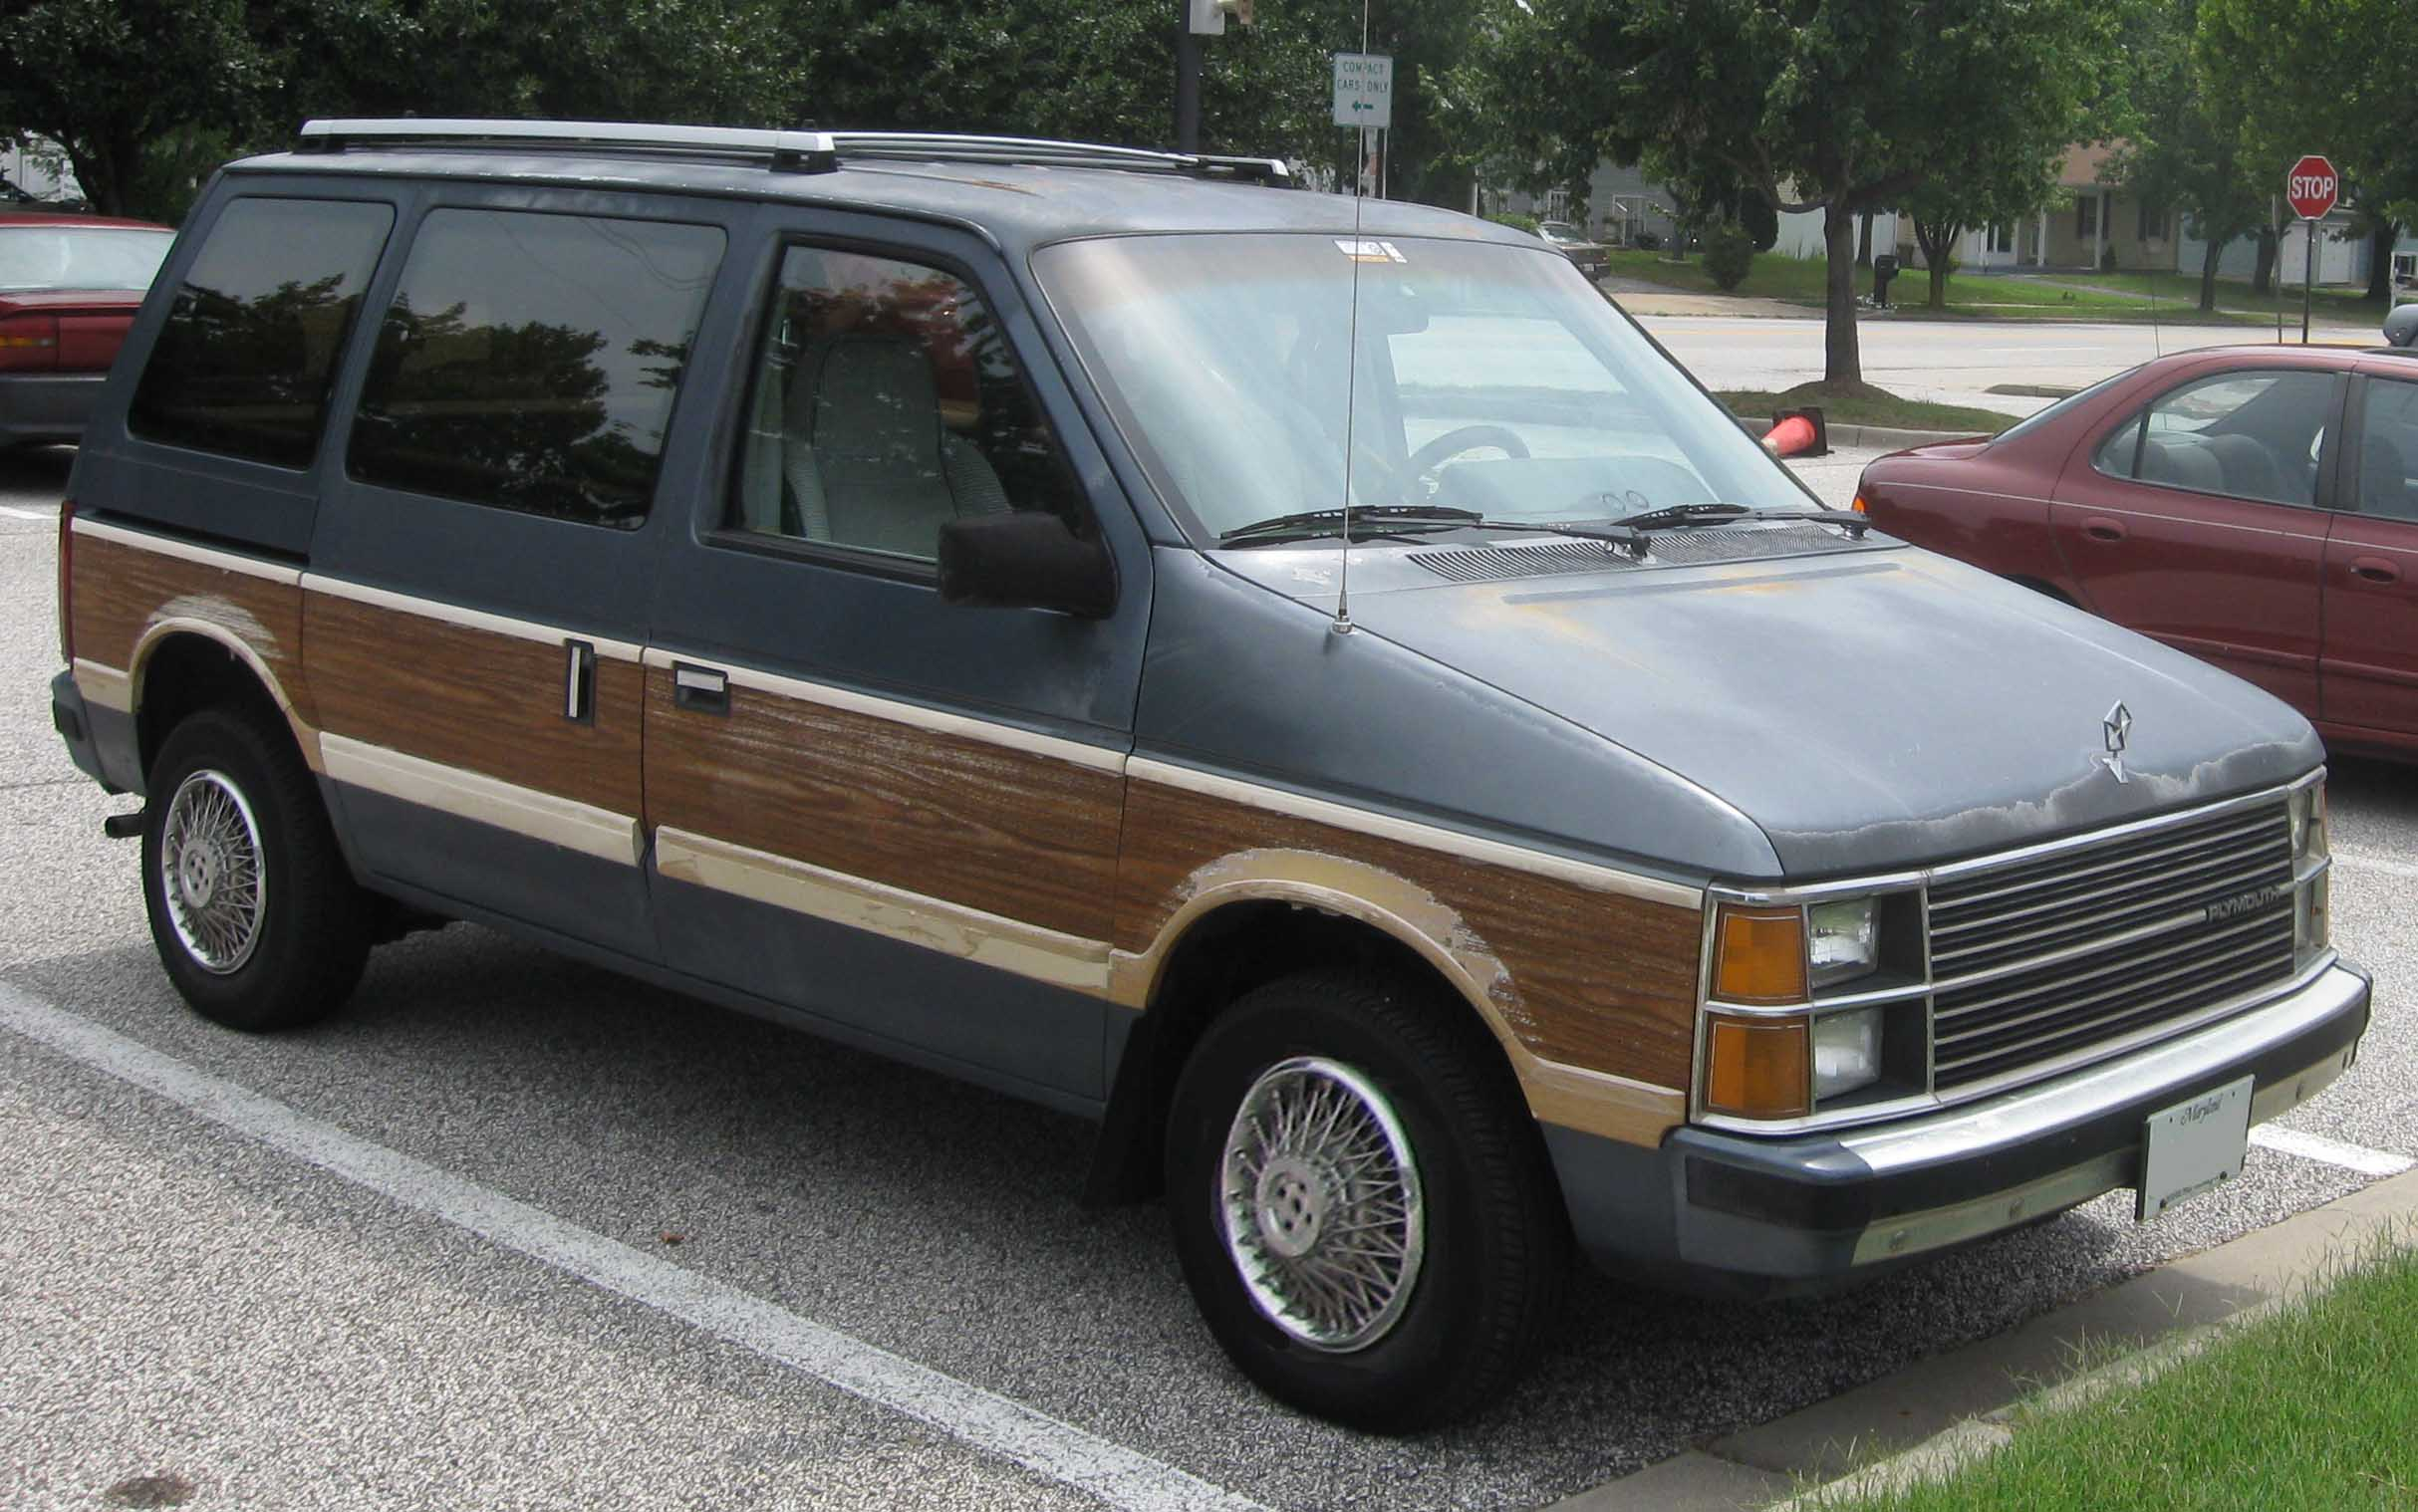 1984 plymouth voyager with File 84 86 Plymouth Voyager Le on Cc Follow Up 1984 Dodge Caravanplymouth Voyager 6 And 8 Passenger Seating further 99plymouthvoyager likewise Pack A Light Piano also 2018 Dodge Grand Caravan furthermore 2017 Chrysler Pacifica Vs 1984 Plymouth Voyager  parison Test.